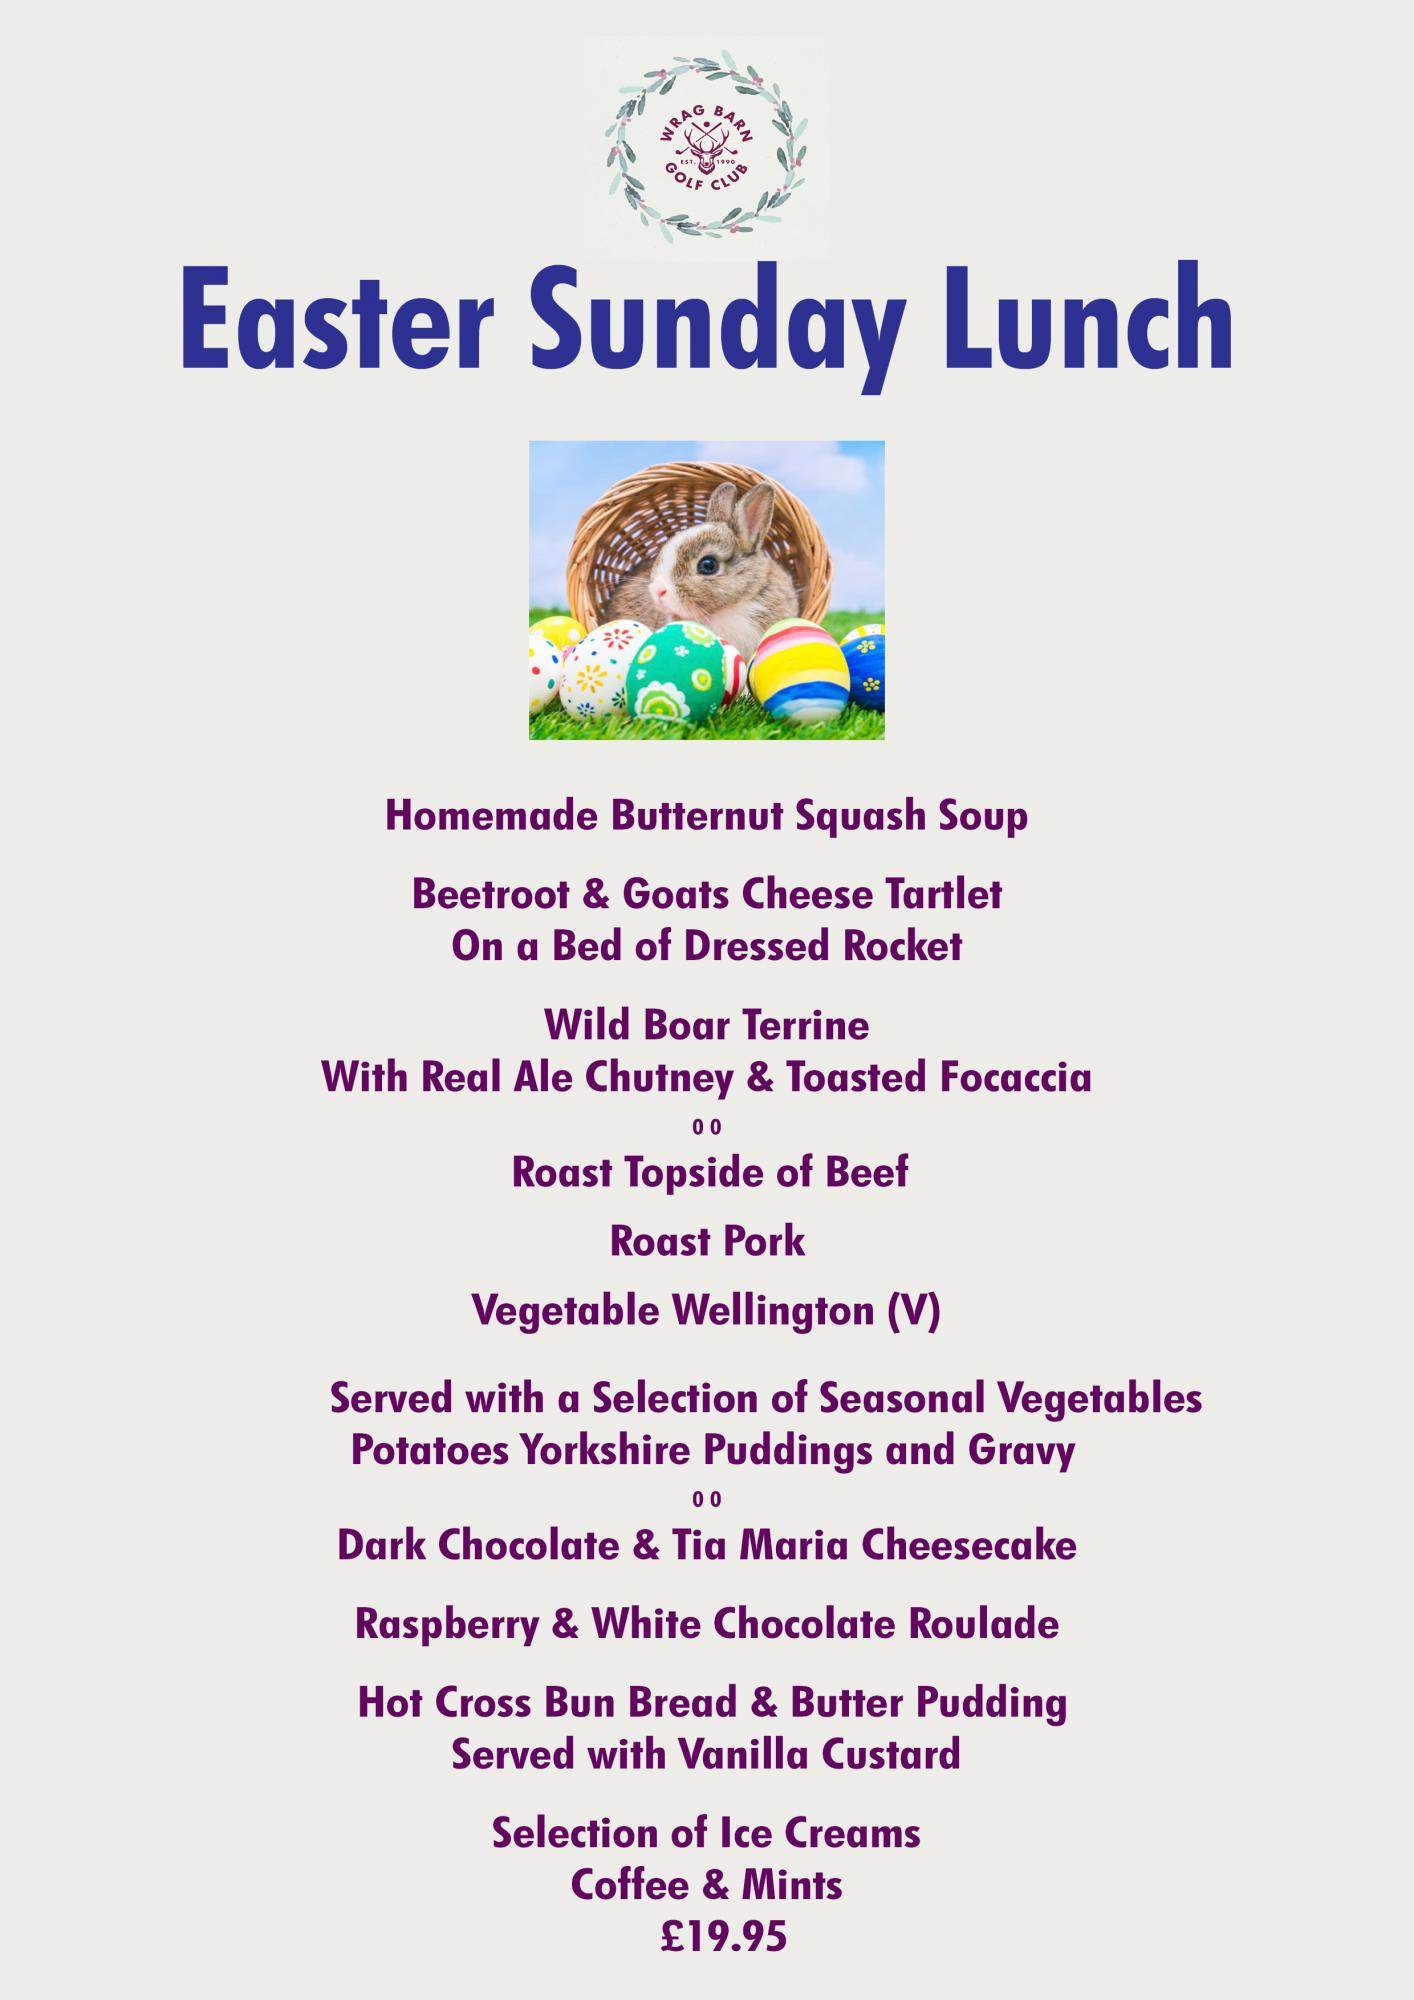 Easter Sunday Lunch at Wrag Barn